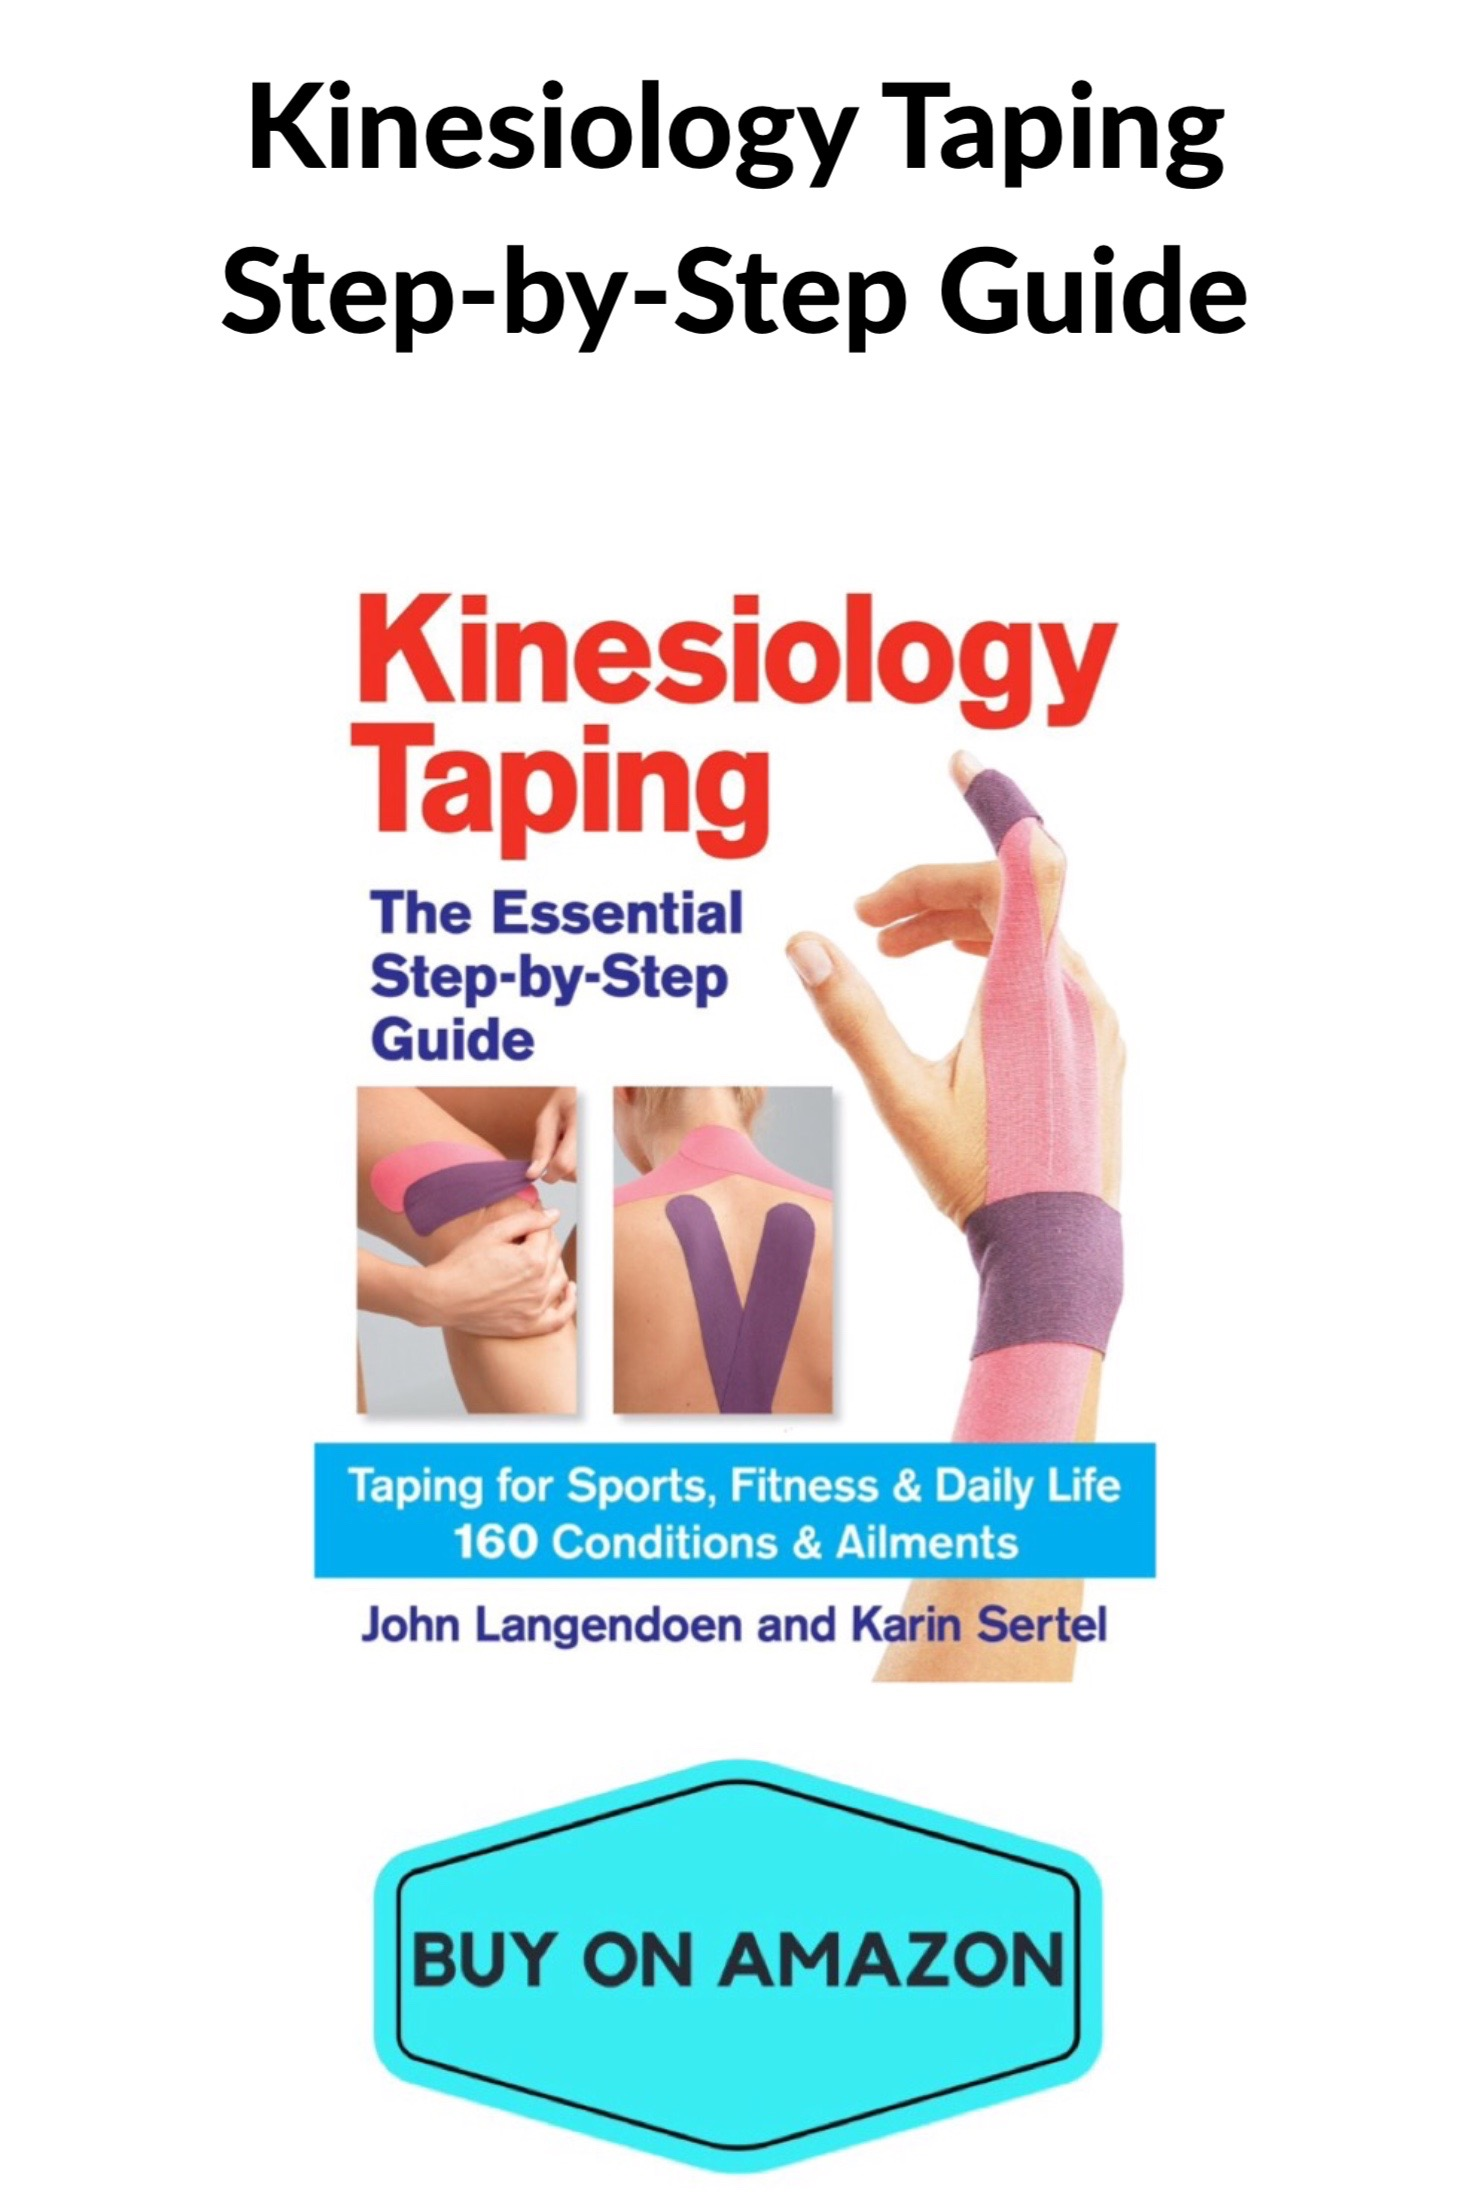 Kinesiology Taping Step-By-Step Guide